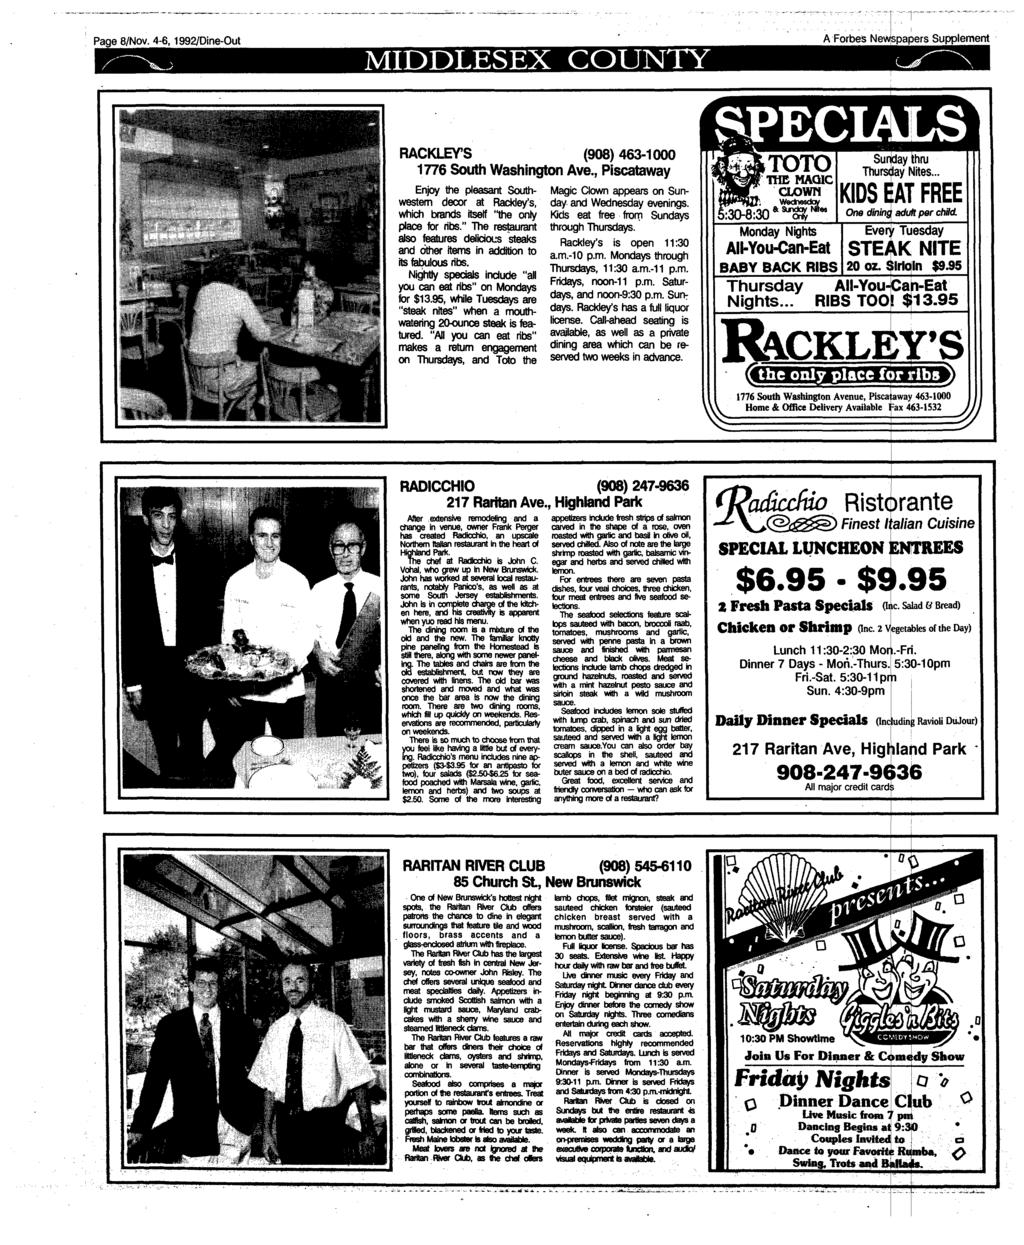 "Page 8/Nov. 4-6,1992/Dine-Out MIDDLESEX COUNTY ""T A Forbes Newspapers Supplement RACKLEY'S (908)463-1000 1776 South Washington Ave., Piscataway Magic Clown appears on Sun- day and Wednesday evenings."